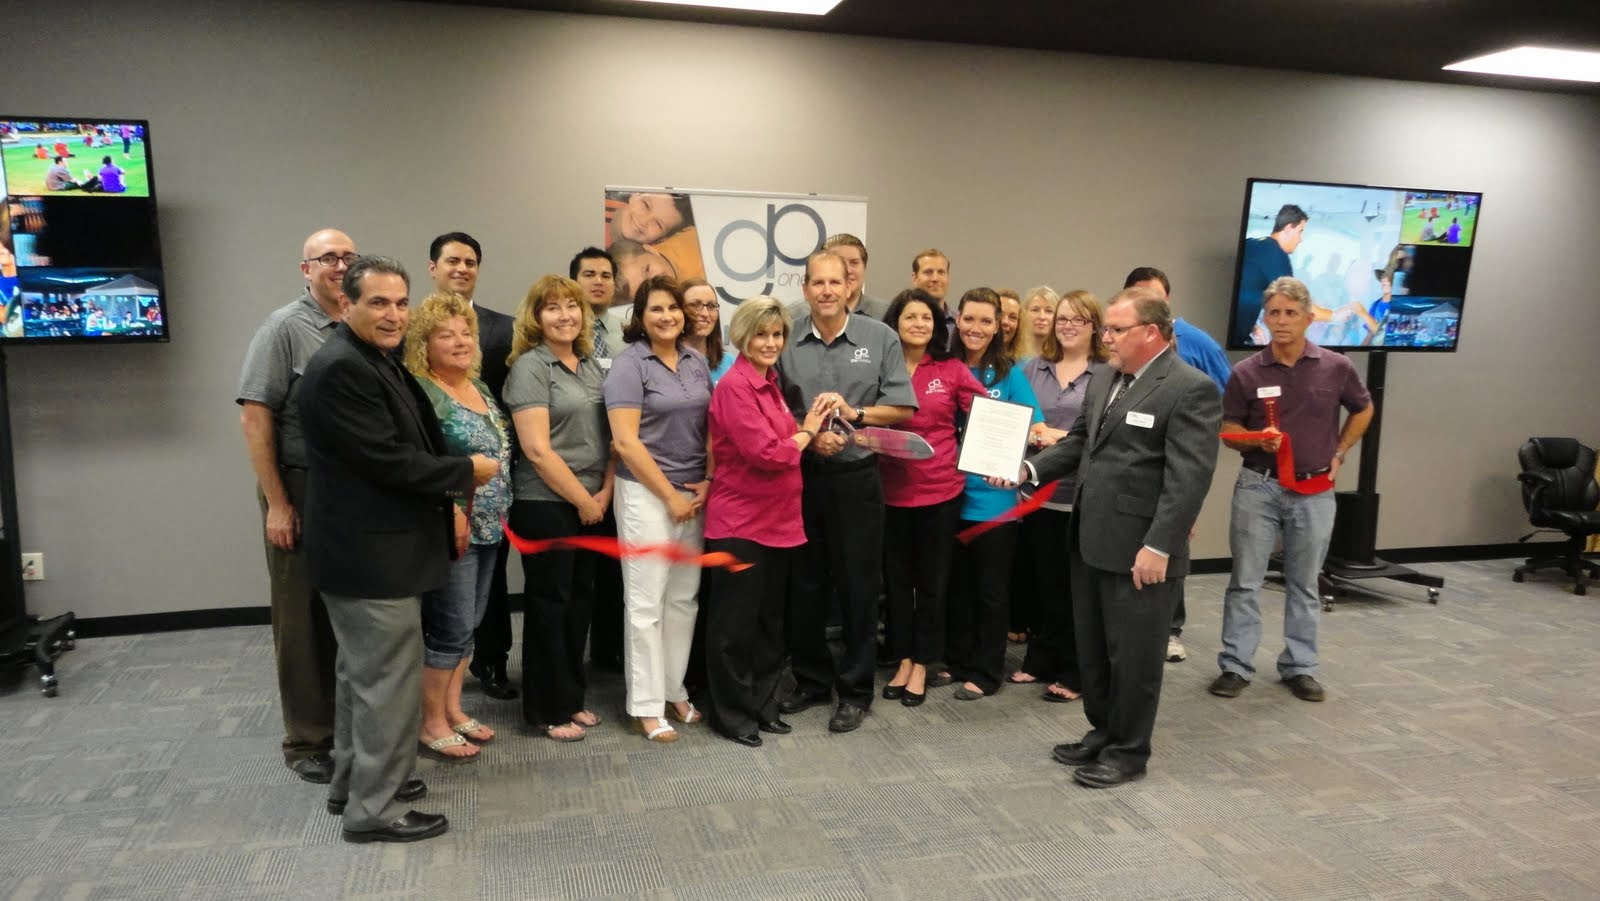 GAP Ministries celebrates the opening of their 25,000 square foot offices and warehouse to Stand in the Gap for hurting children and families.  GAP serves Southern Arizona through 13 residential group homes for children, by providing backpacks to Title 1 elementary schools, and basic needs partnerships with other local nonprofits.